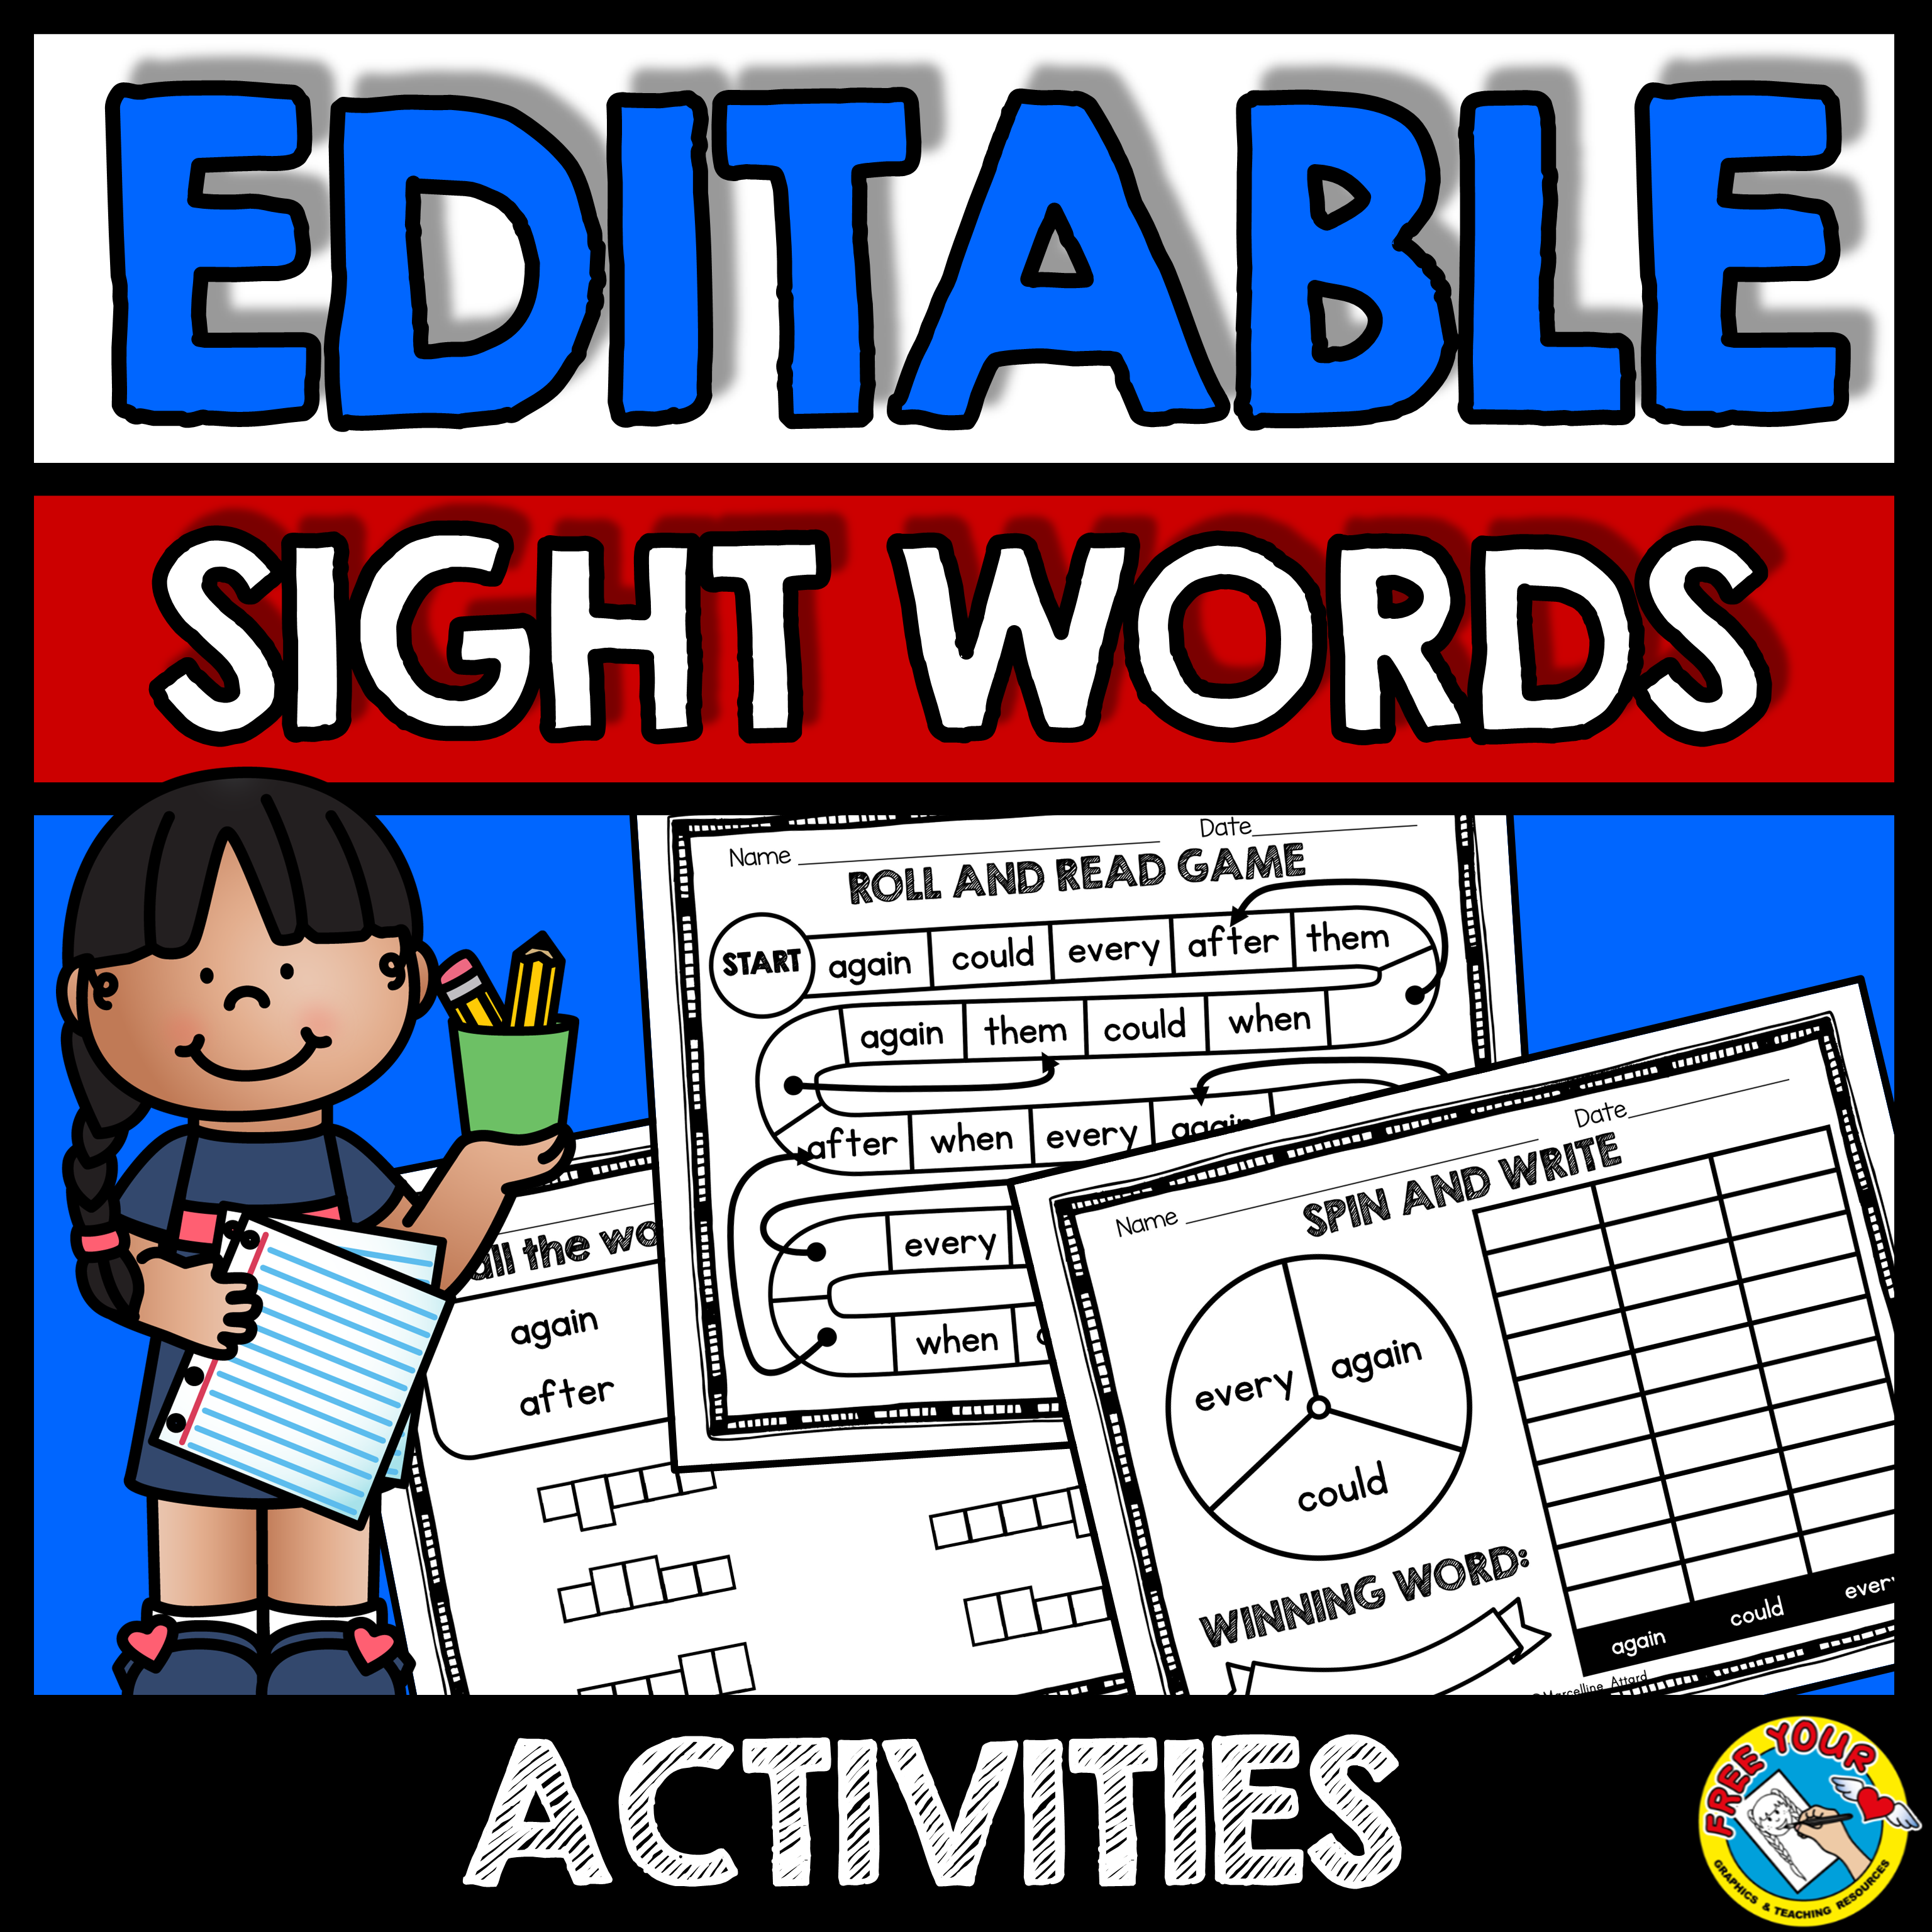 Editable Sight Words Worksheets And Activities